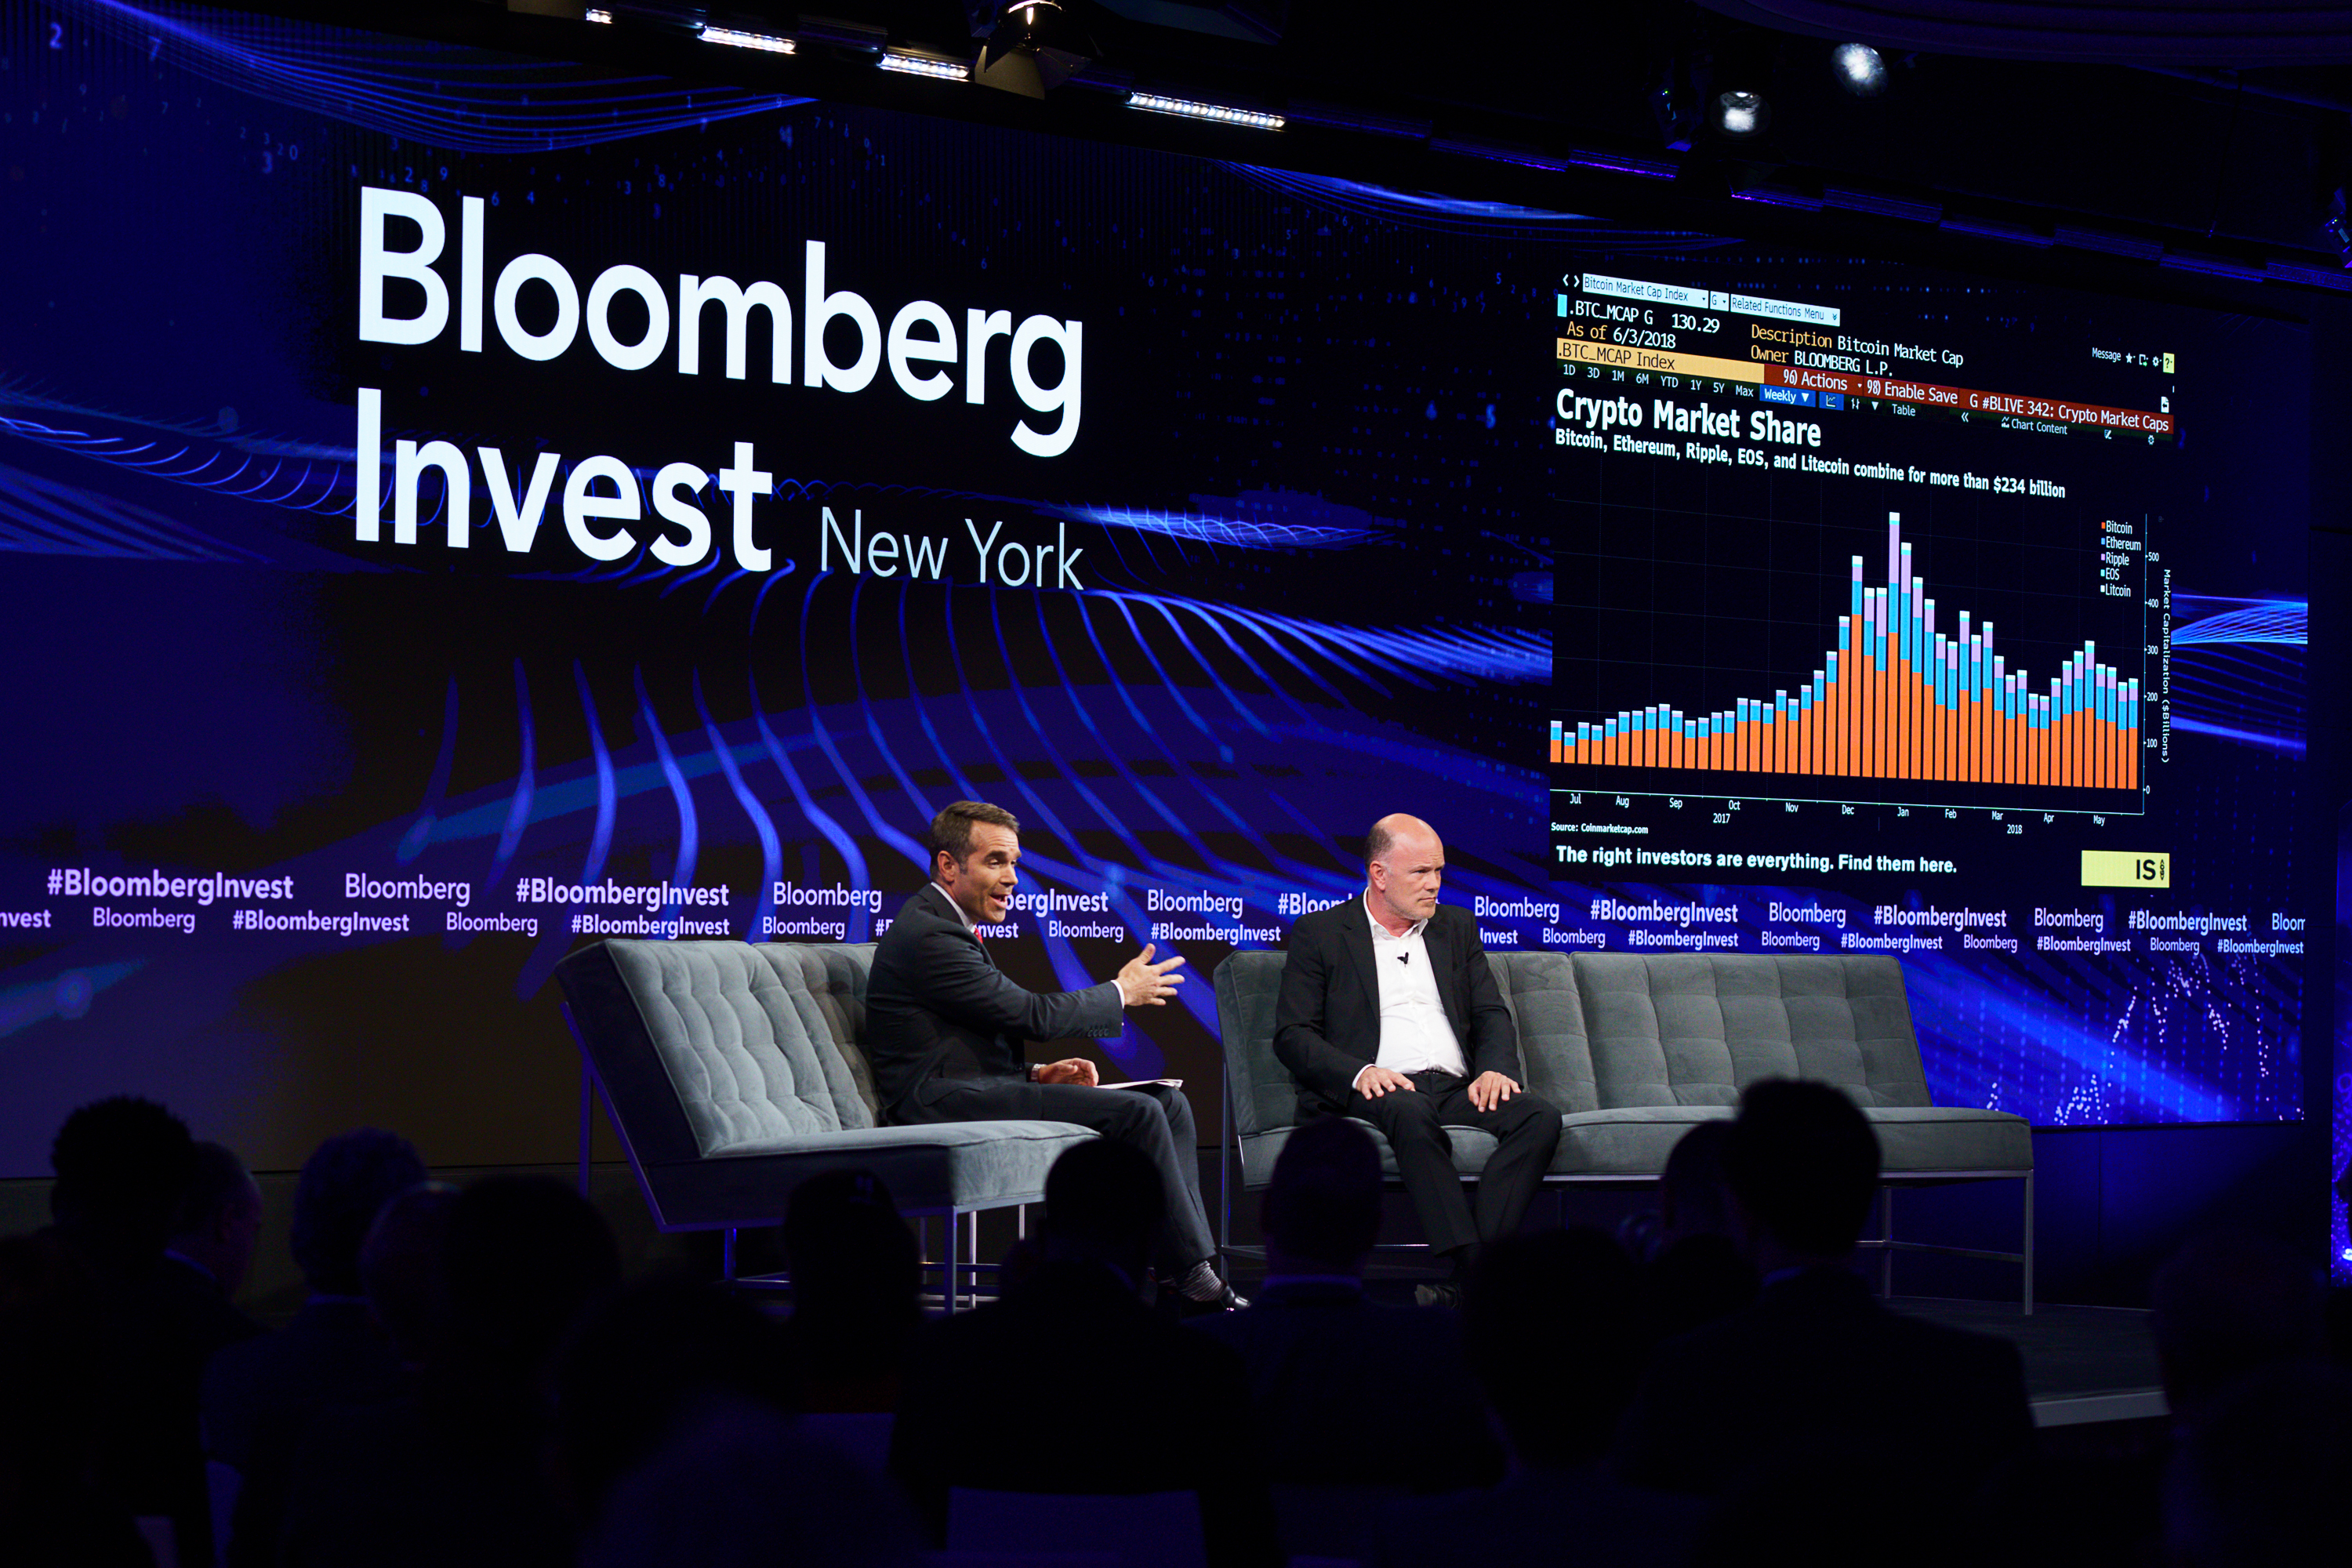 Bloomberg Invest New York 2019 | Bloomberg Live